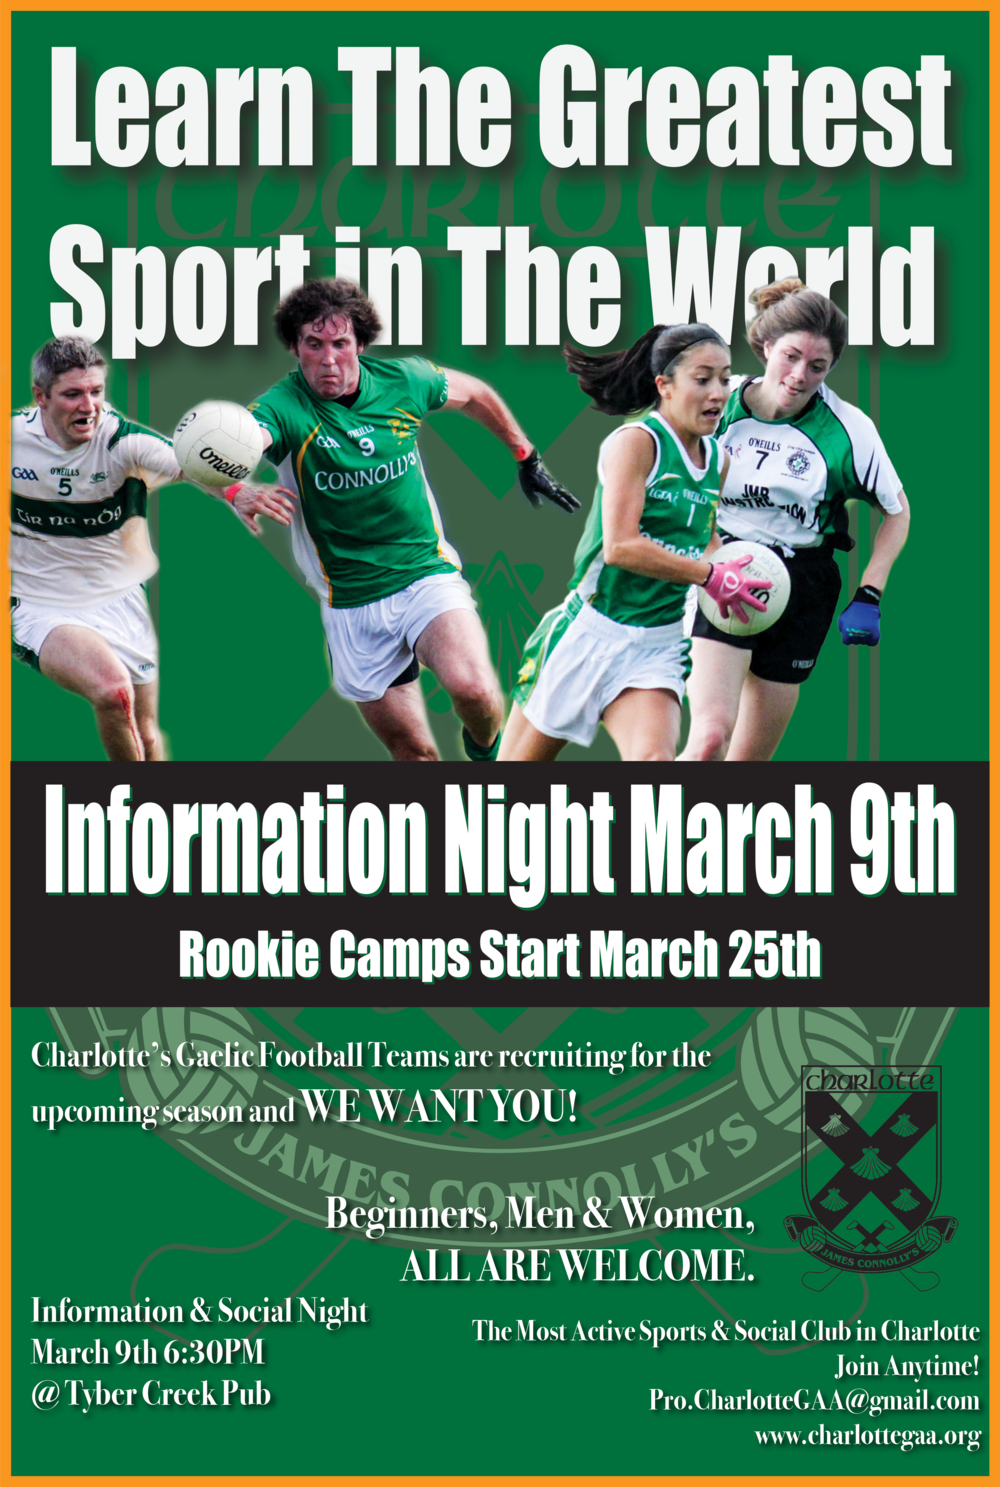 Info night is March 9th 6:30-8:30PM at Tyber Creek Pub.